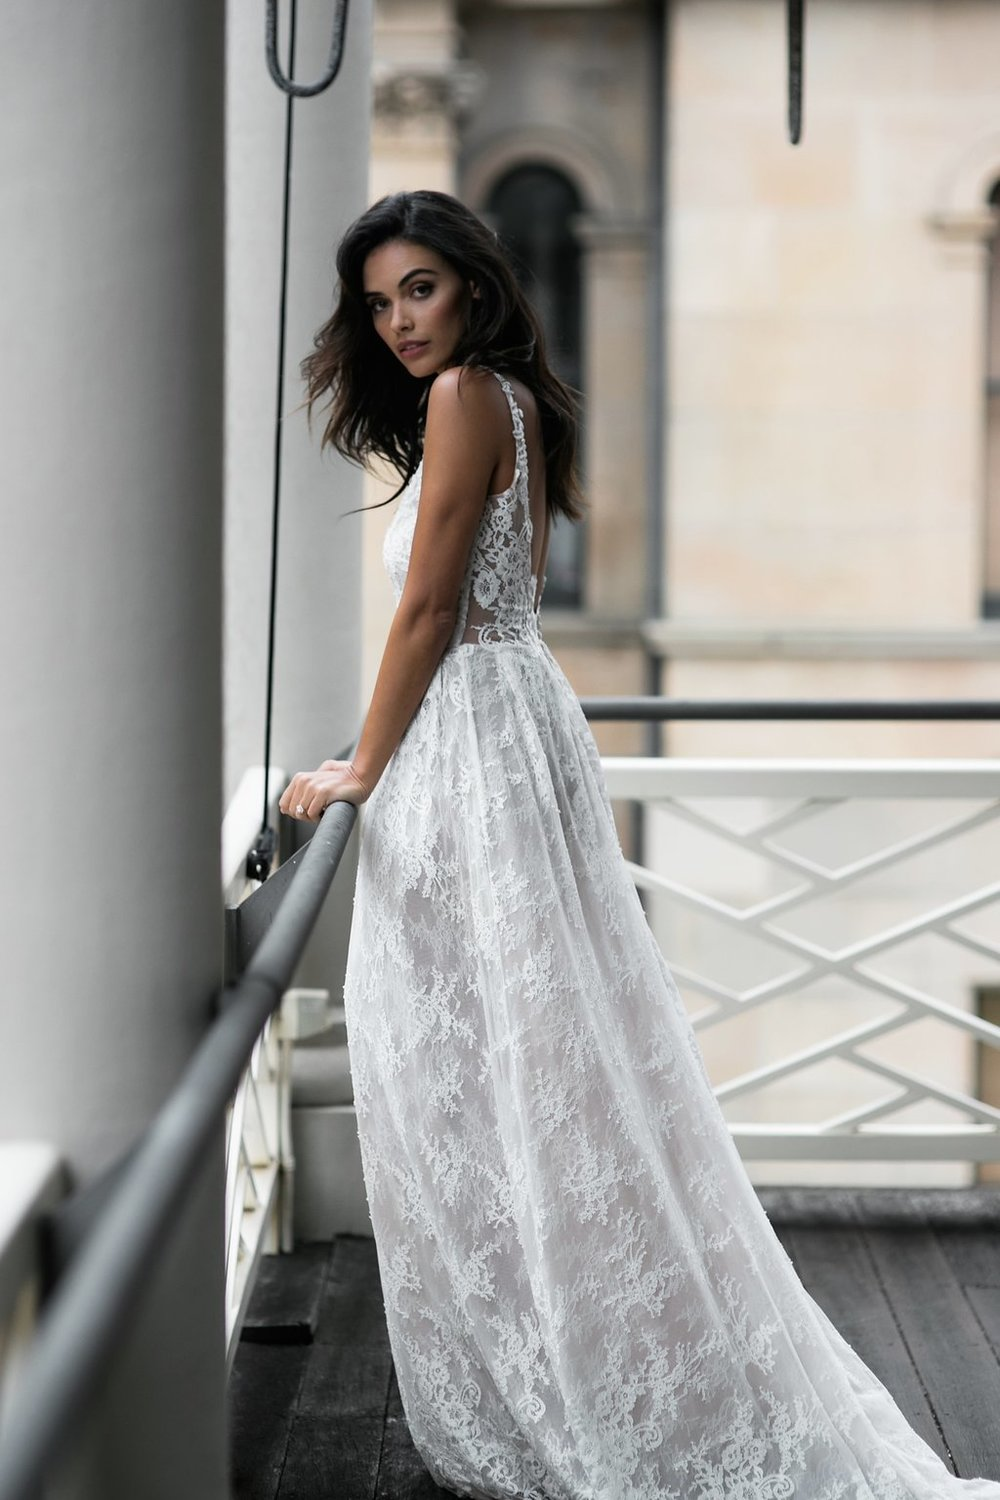 Alice lace back moira hughes wedding gown.jpg